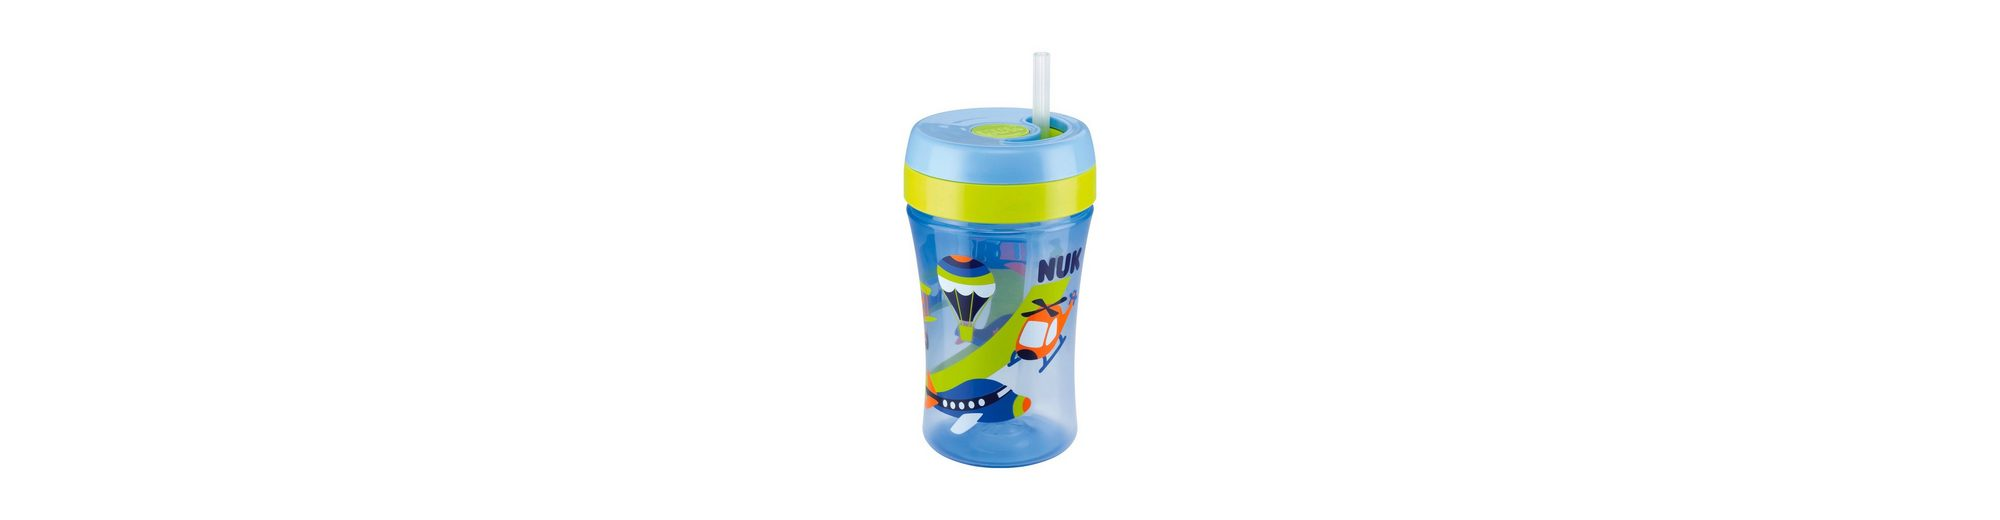 NUK Easy Learning 1-2-3 System Cup 3